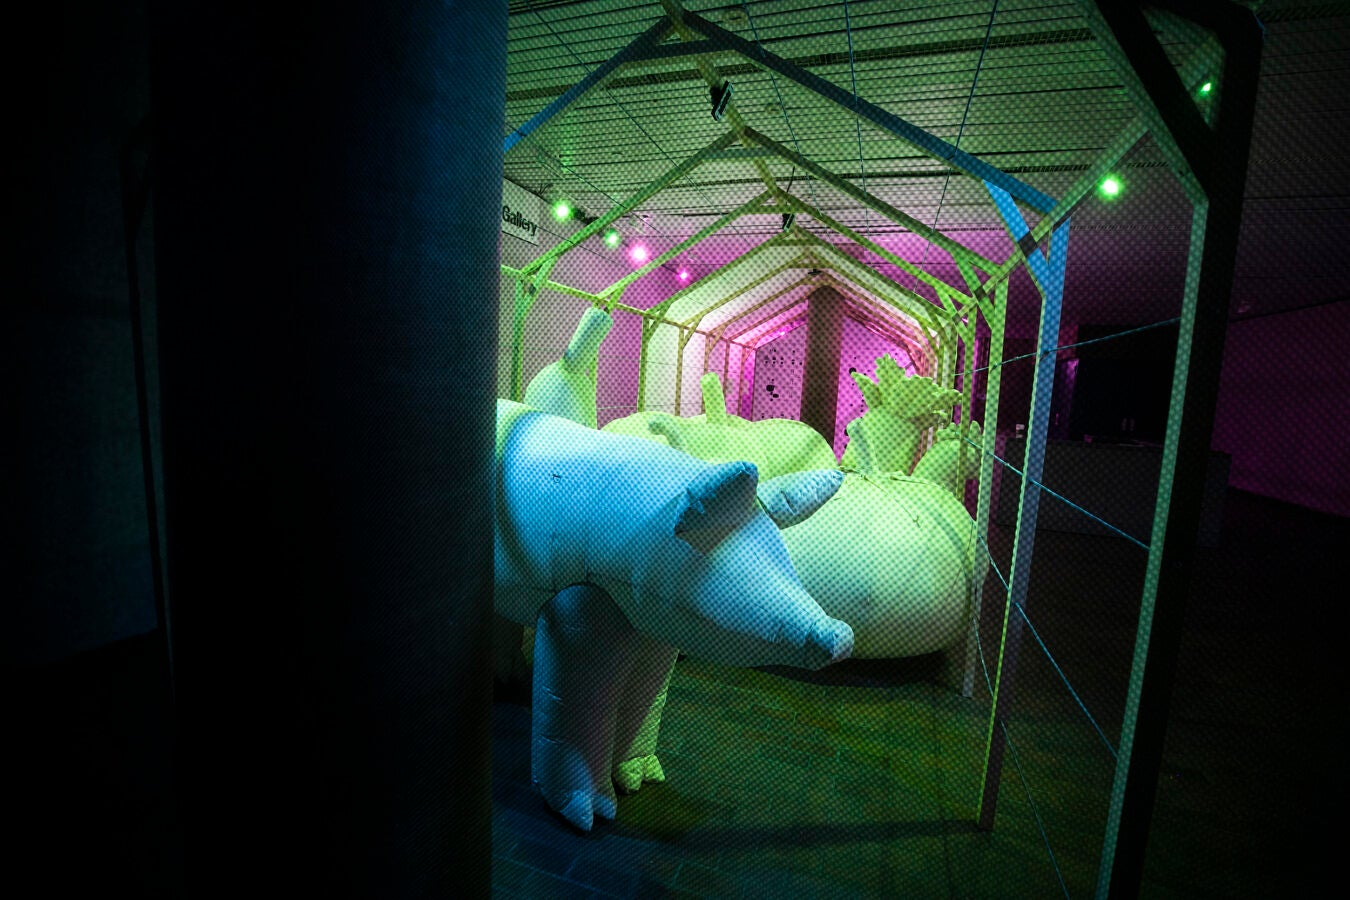 Large pink, green, and blue inflatable farm animals.